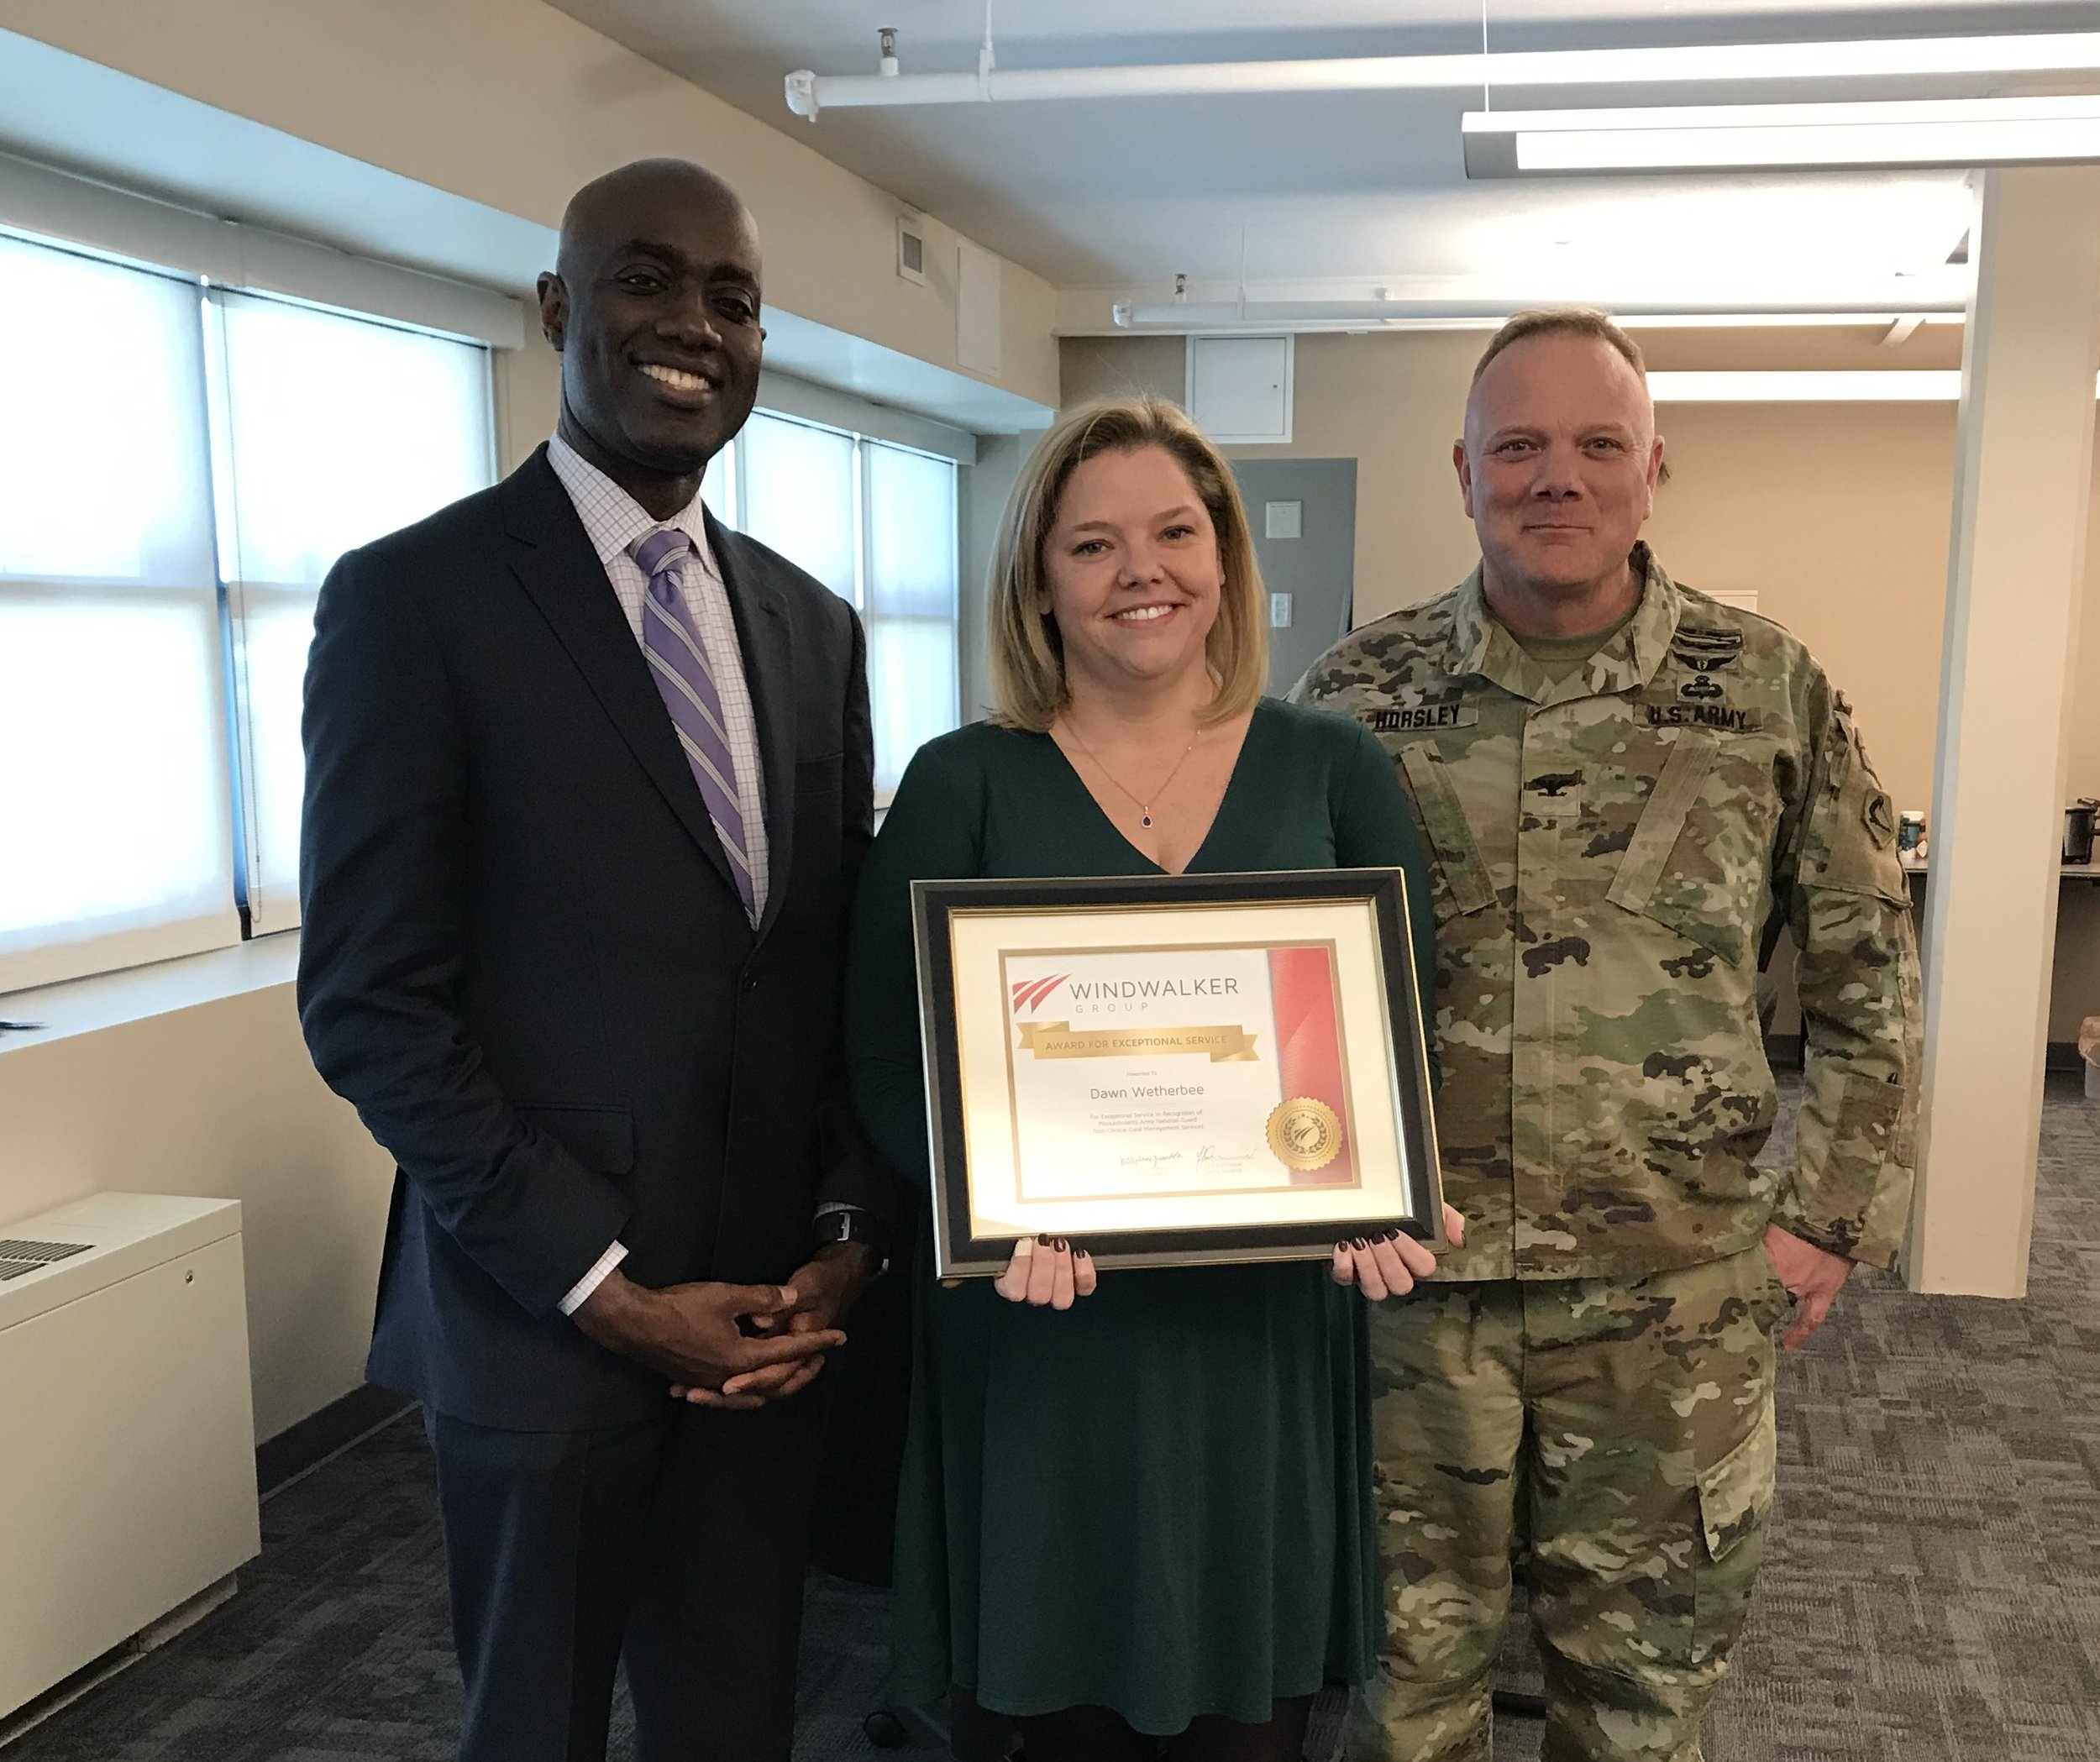 Dawn Wetherbee - Dawn has achieved an Award for Exceptional Service for her outstanding leadership on the MA Army National Guard Medical Case Management contract at Hanscom Air Force Base in Bedford, MA. She has been a stalwart ally in achieving greater medical readiness for the MA Army National Guard medical command. Awarded March 7th, 2019